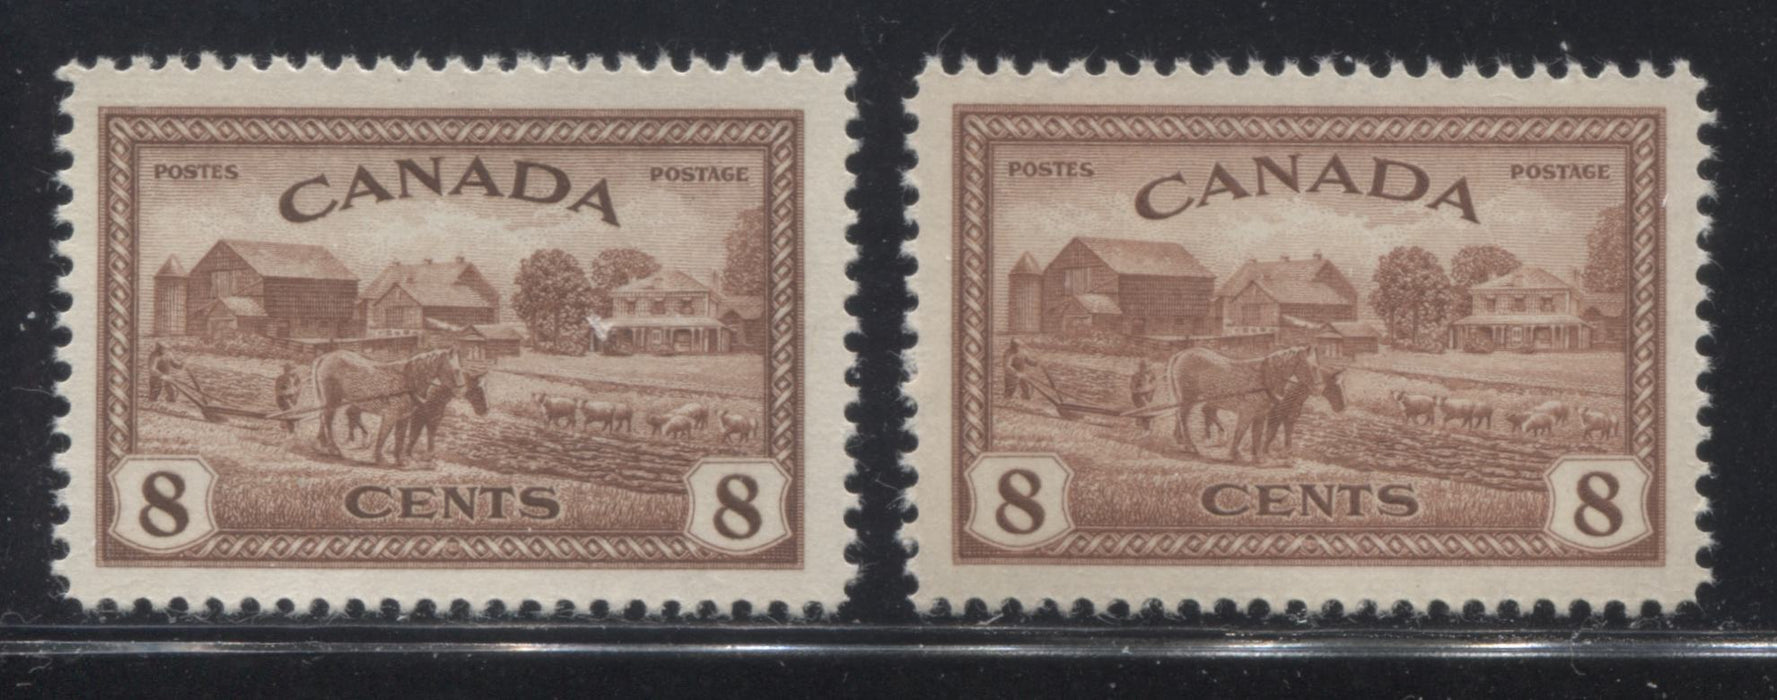 shopify auction Brixton Chrome Canada #268 8c Red Brown Farm Scene, 1946-1951 Peace Issue, Two VFNH Mint Singles, Each a Different Shade-145785-88852